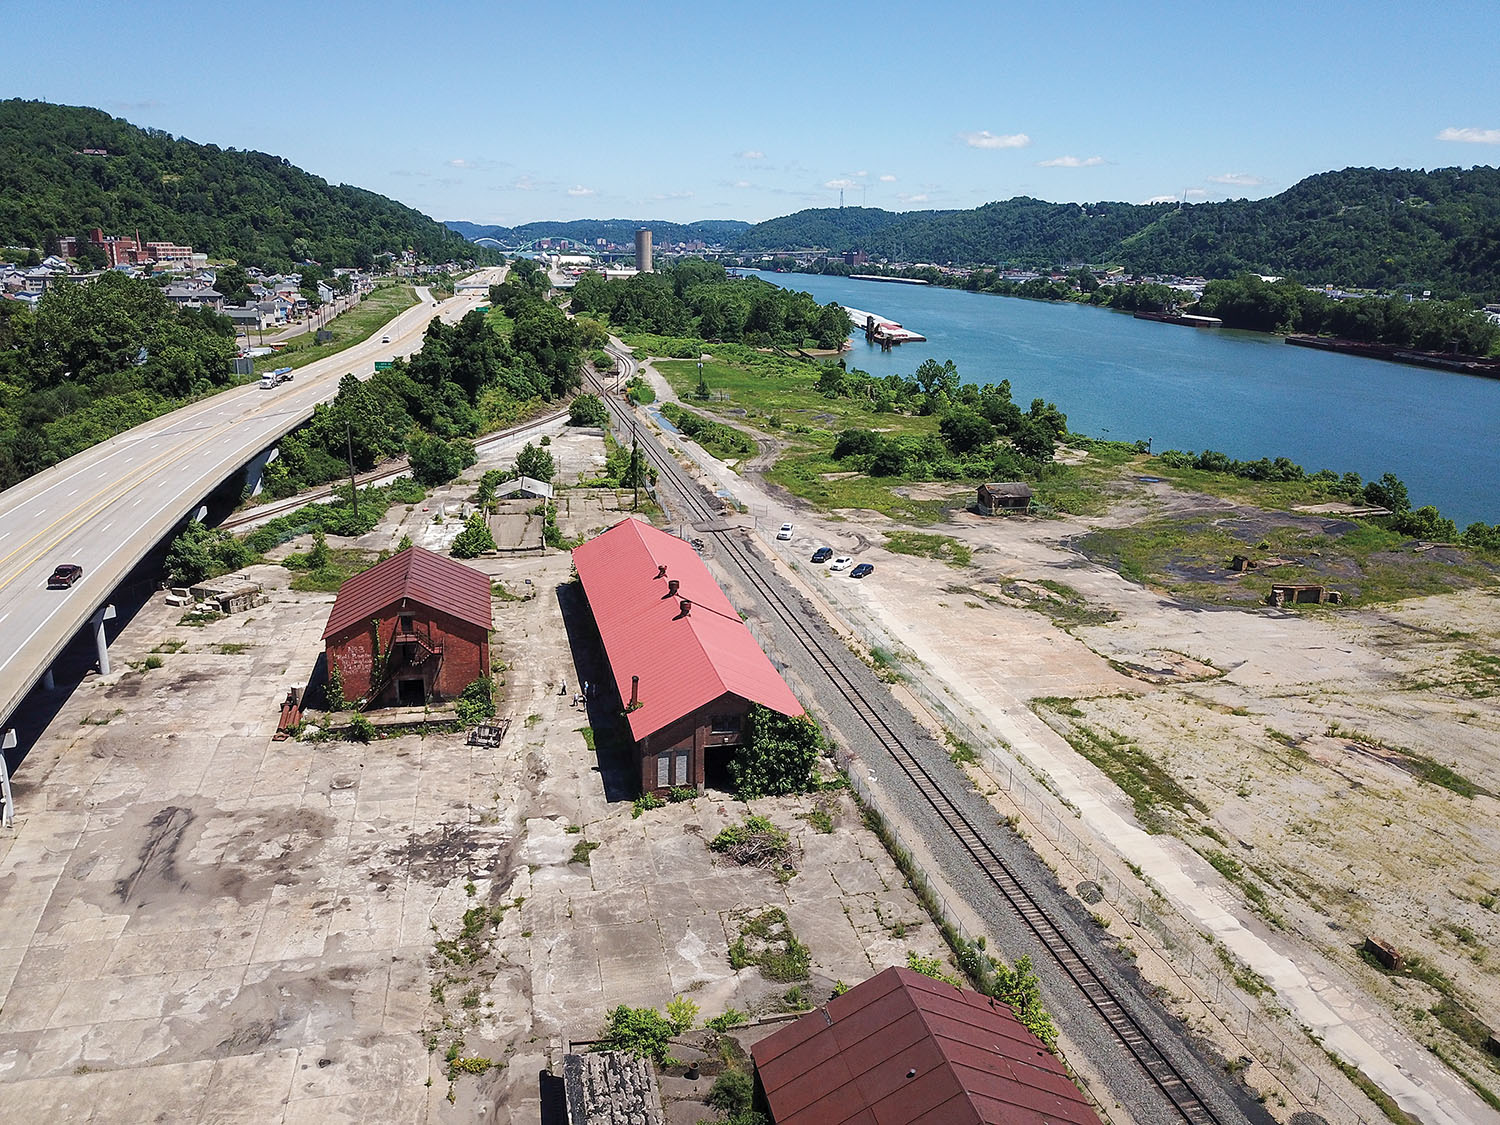 Mountaineer Products Inc., doing business as MPR Supply Chain Solutions, has purchased a 50-acre Ohio River site with rail frontage on the Wheeling & Lake Erie and Norfolk Southern railways to use as part of its transloading business. (Photo by Sherri Butler)